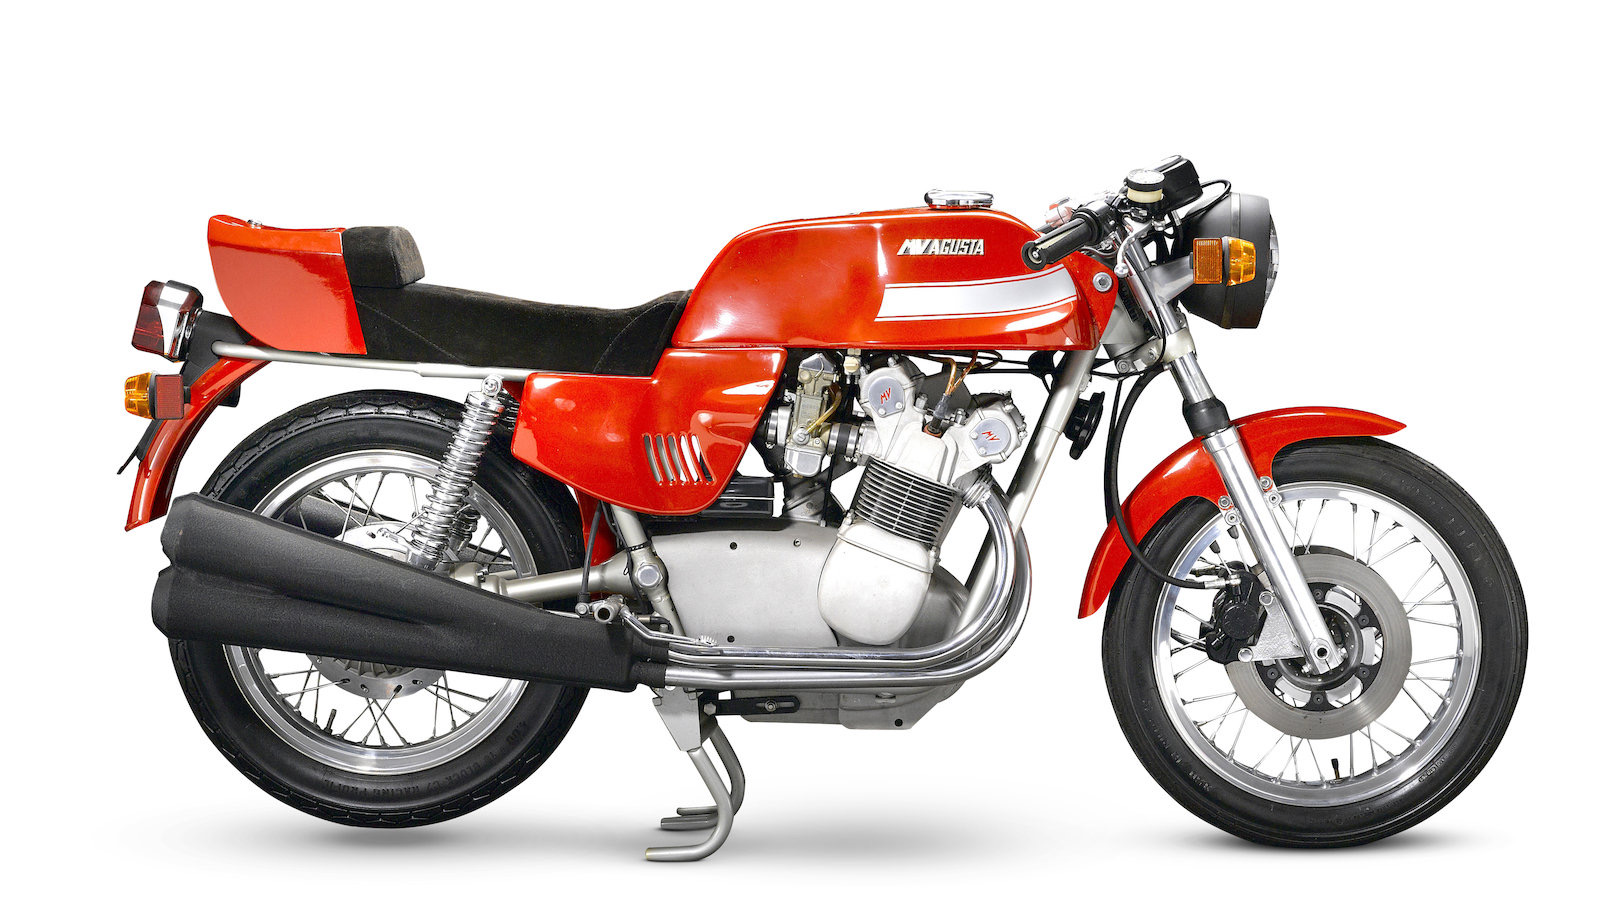 Motorcycles, Bonhams offers 74 motorcycles from single collector at British auction, ClassicCars.com Journal